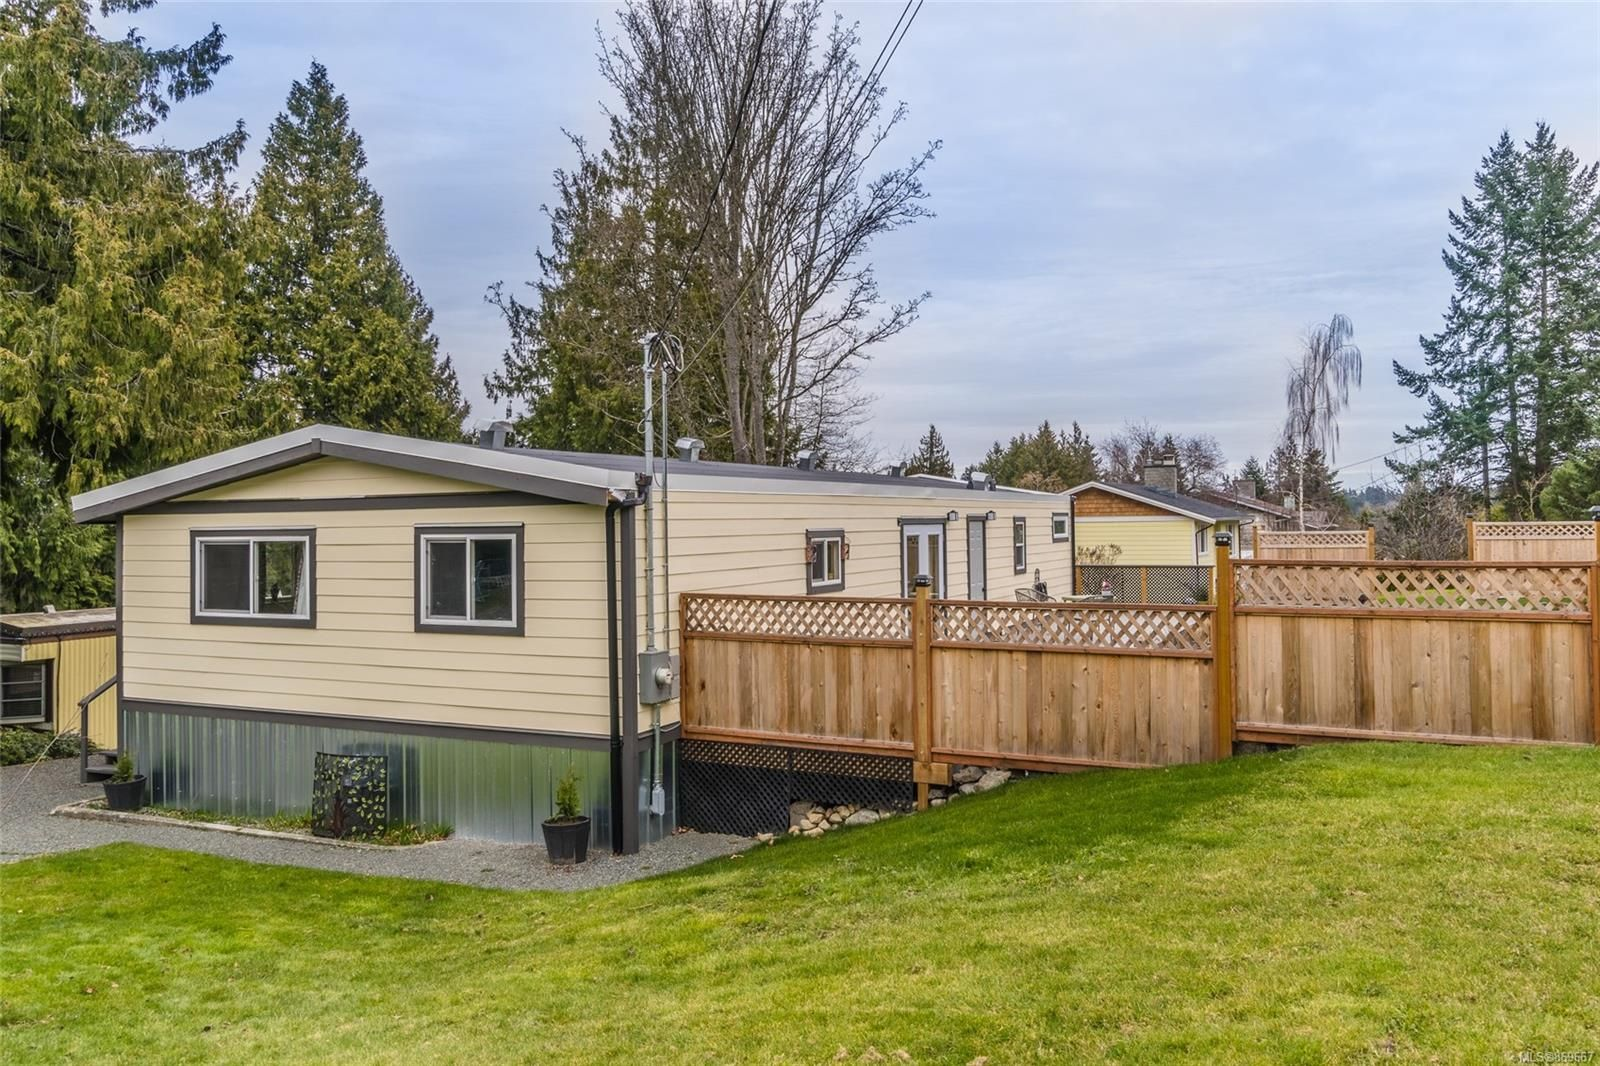 Main Photo: 6960 Peterson Rd in : Na Lower Lantzville House for sale (Nanaimo)  : MLS®# 869667